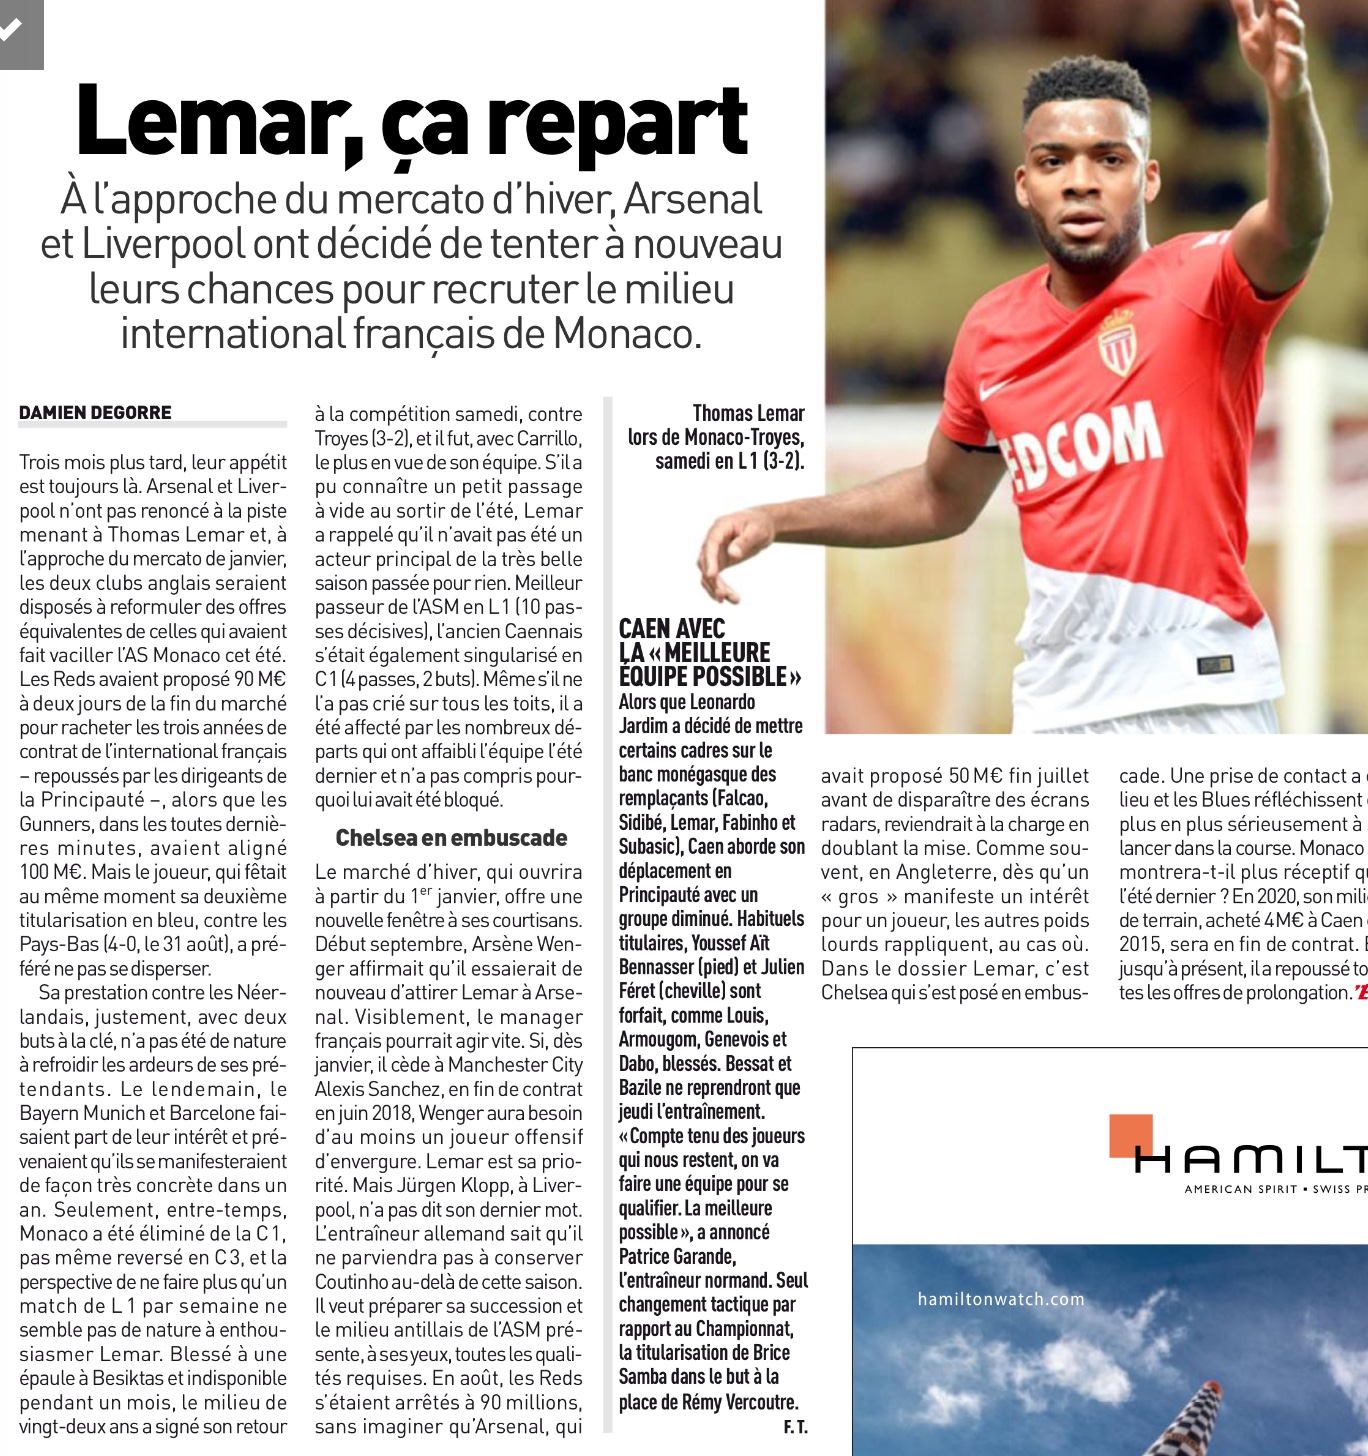 Chelsea join the race for Thomas Lemar